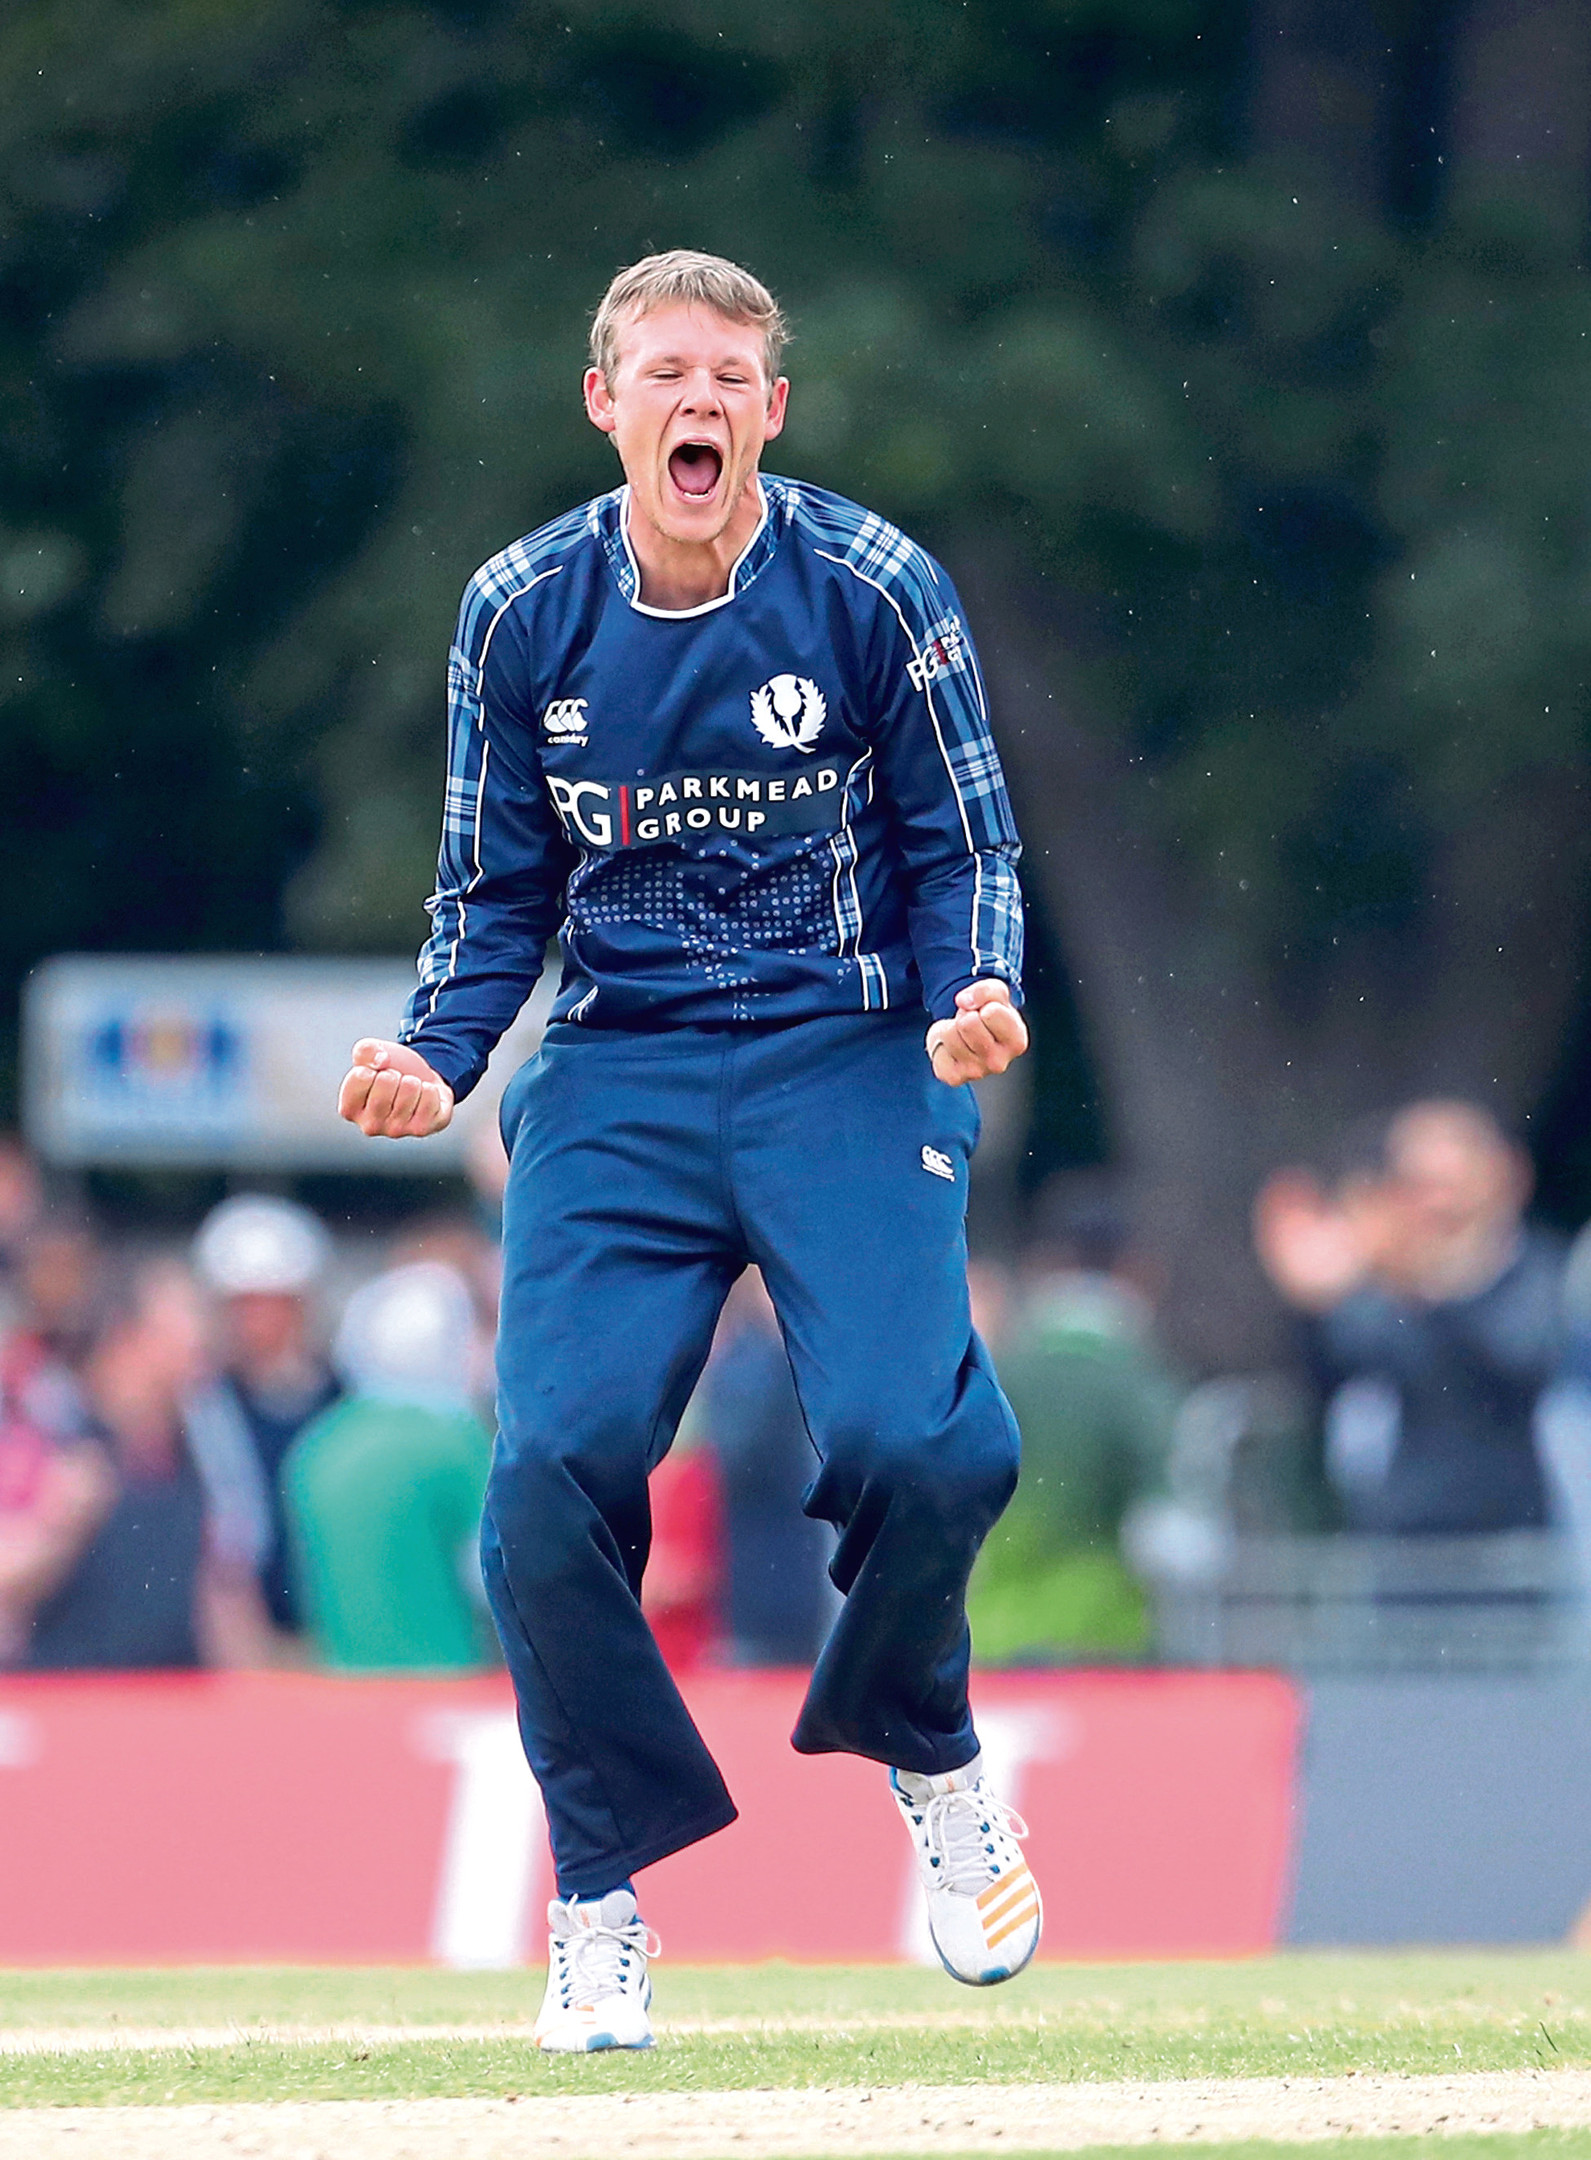 Scotland's Michael Leask celebrates after Pakistan's Asif Ali is caught out during the Second International T20 match at The Grange, Edinburgh. PRESS ASSOCIATION Photo. Picture date: Wednesday June 13, 2018. See PA story CRICKET Scotland. Photo credit should read: Jane Barlow/PA Wire